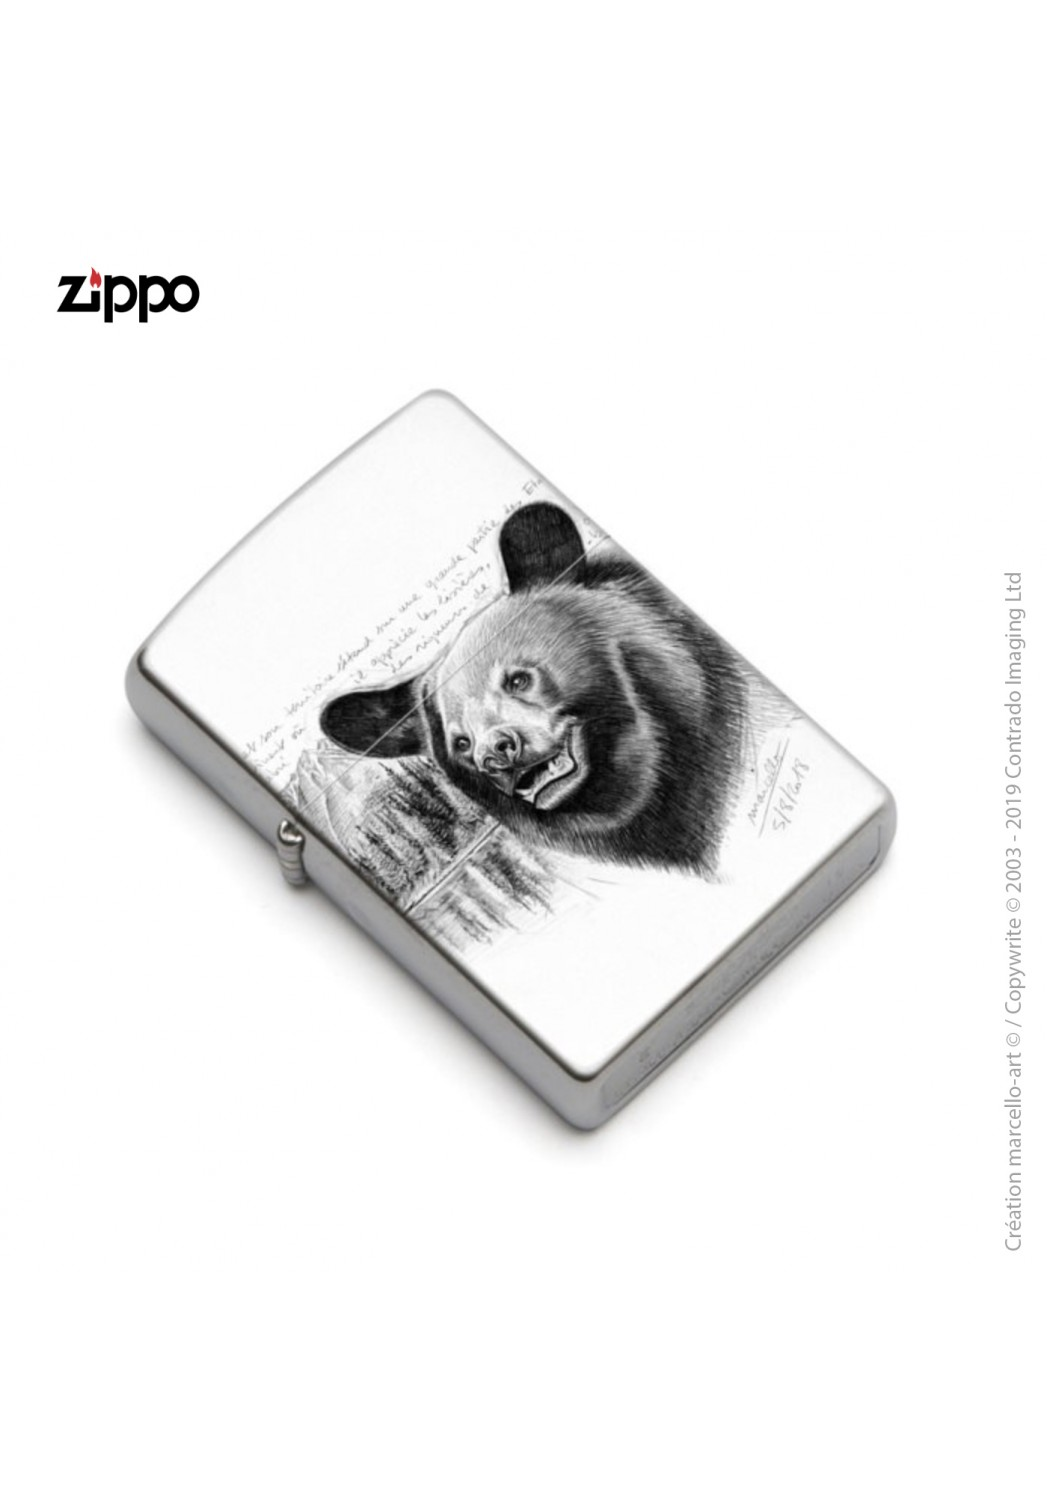 Marcello-art: Decoration accessoiries Zippo 382 black bear head